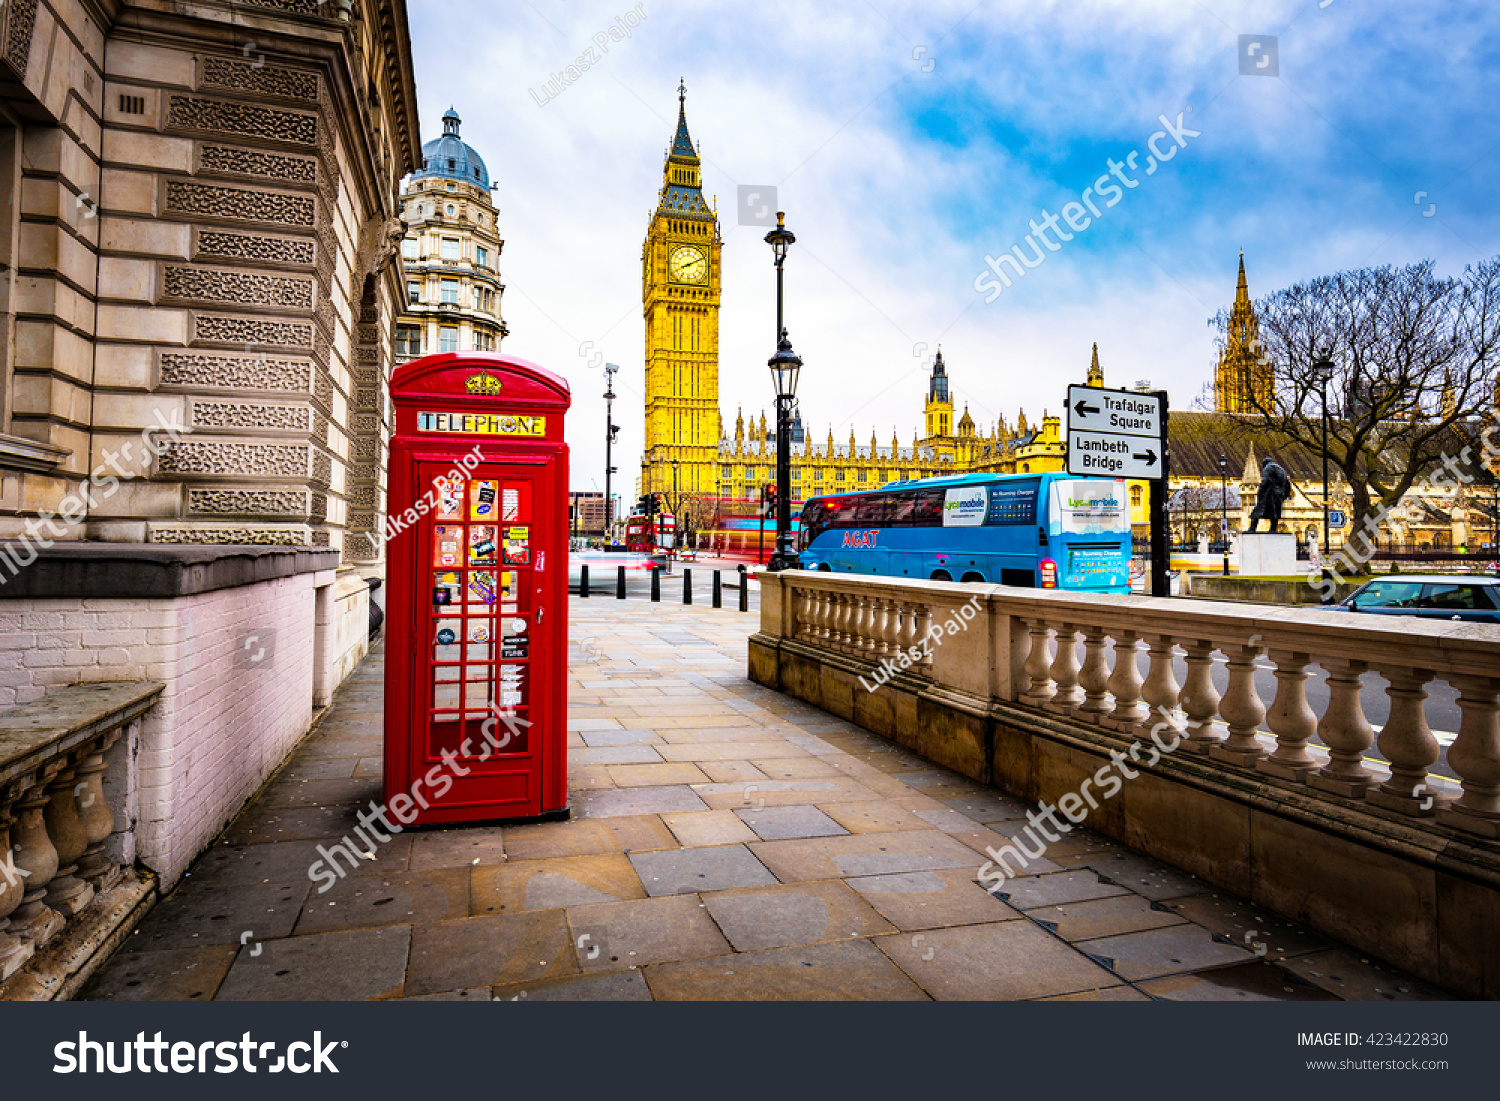 big view photography.  View LONDON  JANUARY 10  View Of Big Ben The Palace Westminster And A Intended Photography